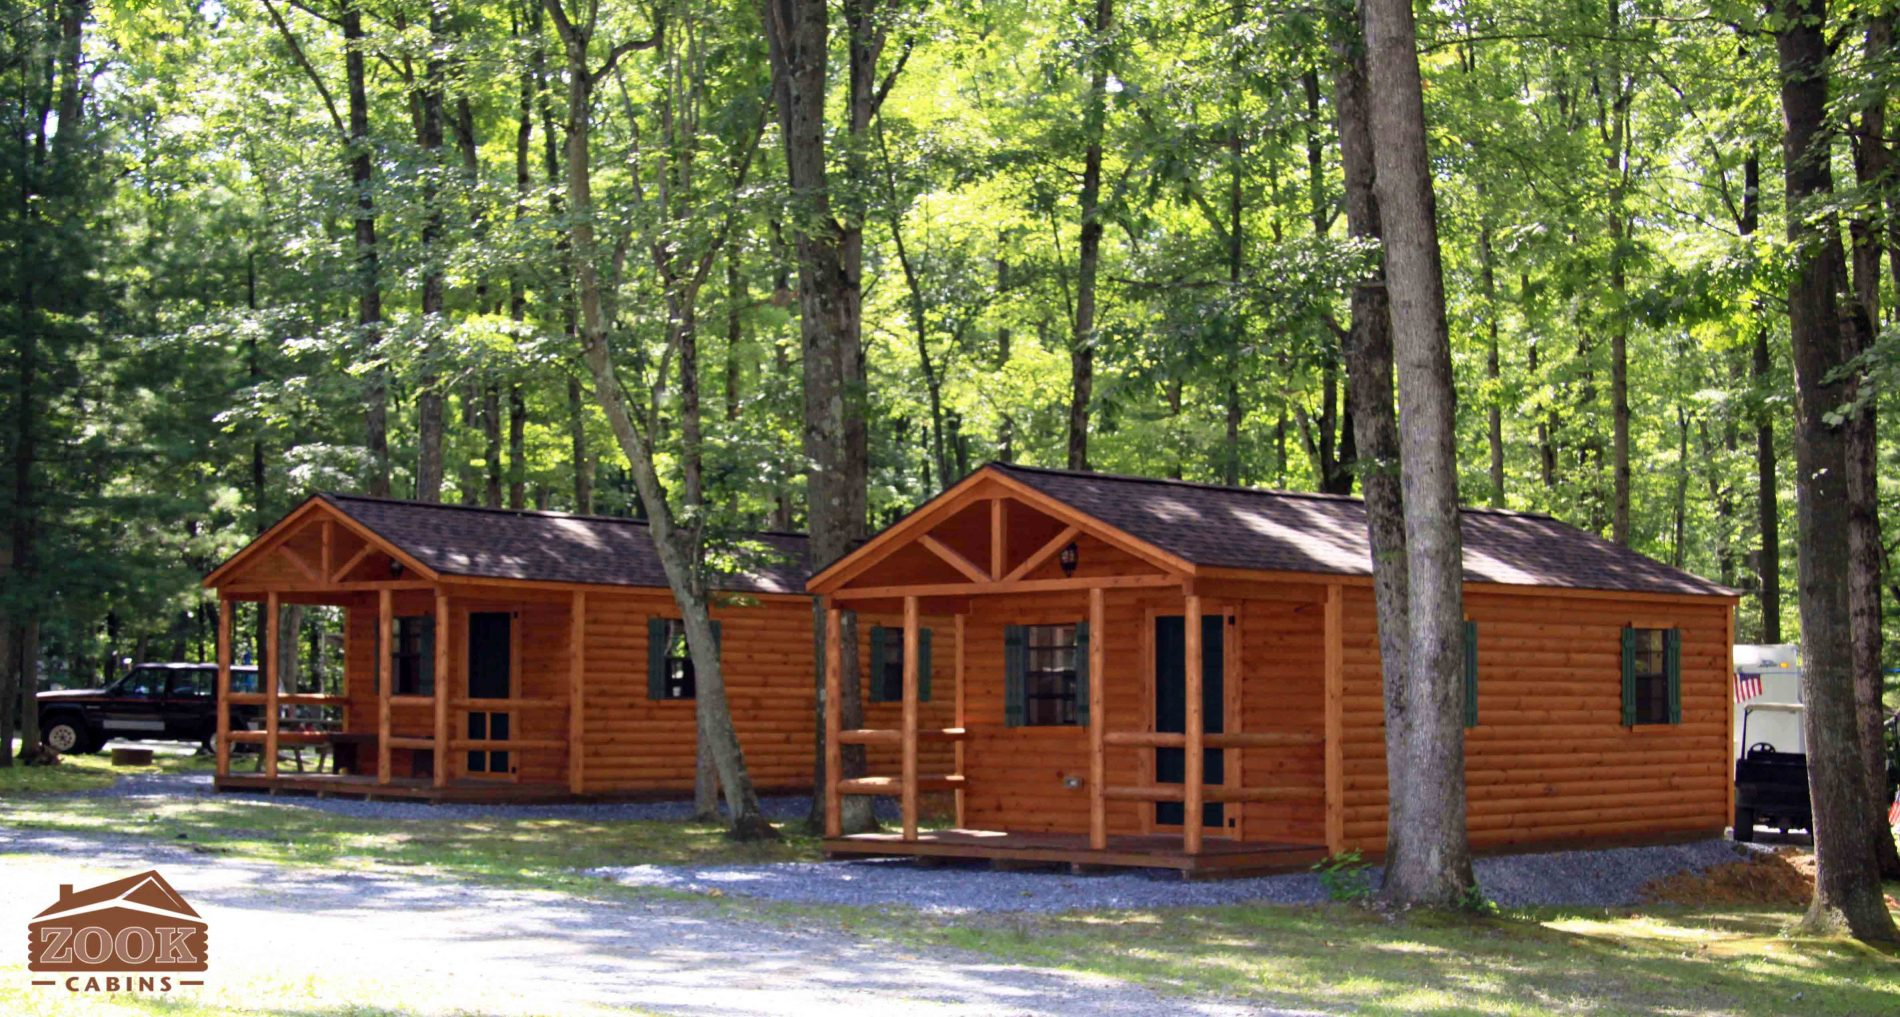 Settler Cabin | Hunting Lodge Plans | Small Cabin Plans | Zook Cabins